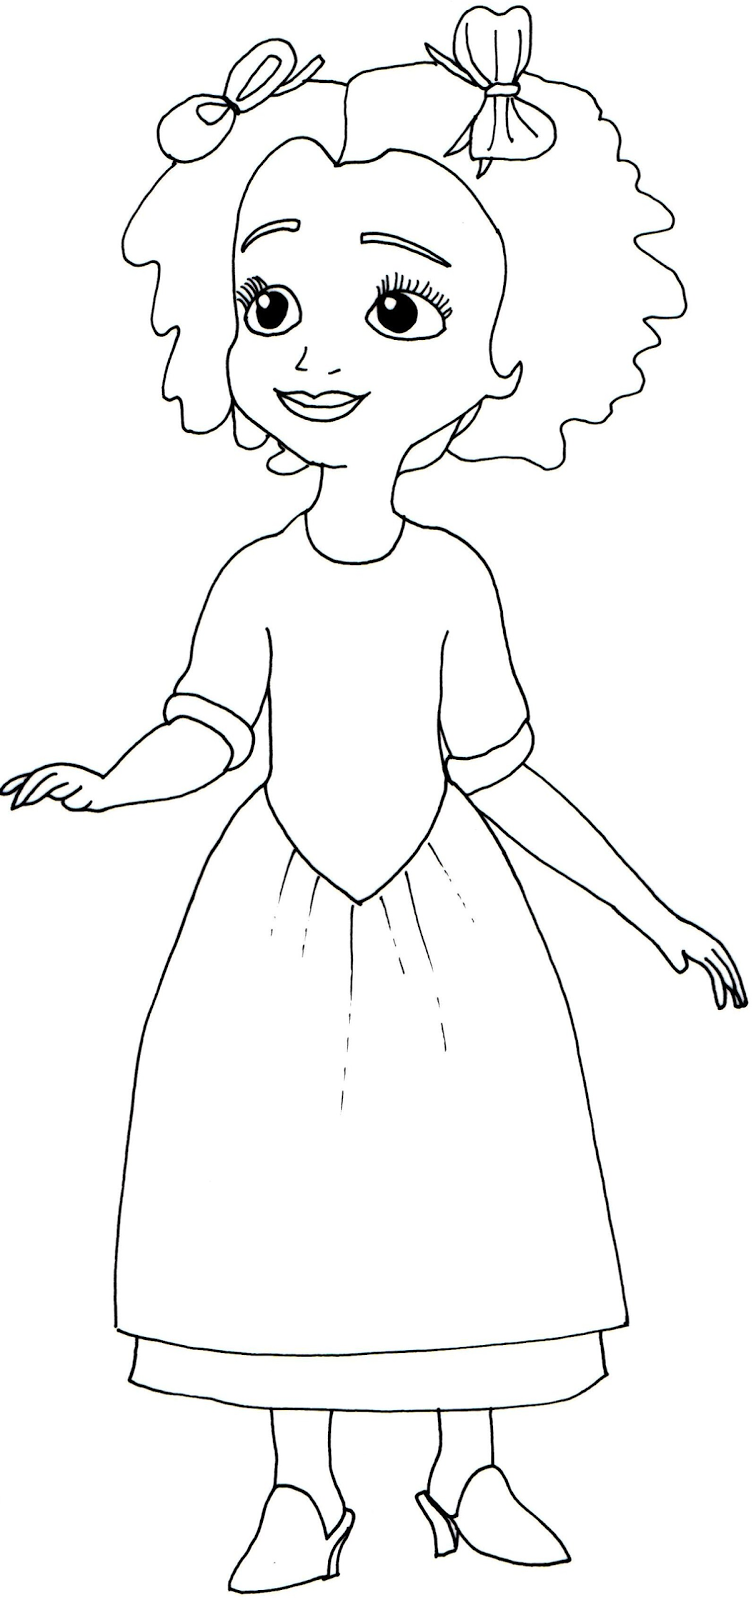 Sofia The First Coloring Pages March 2014